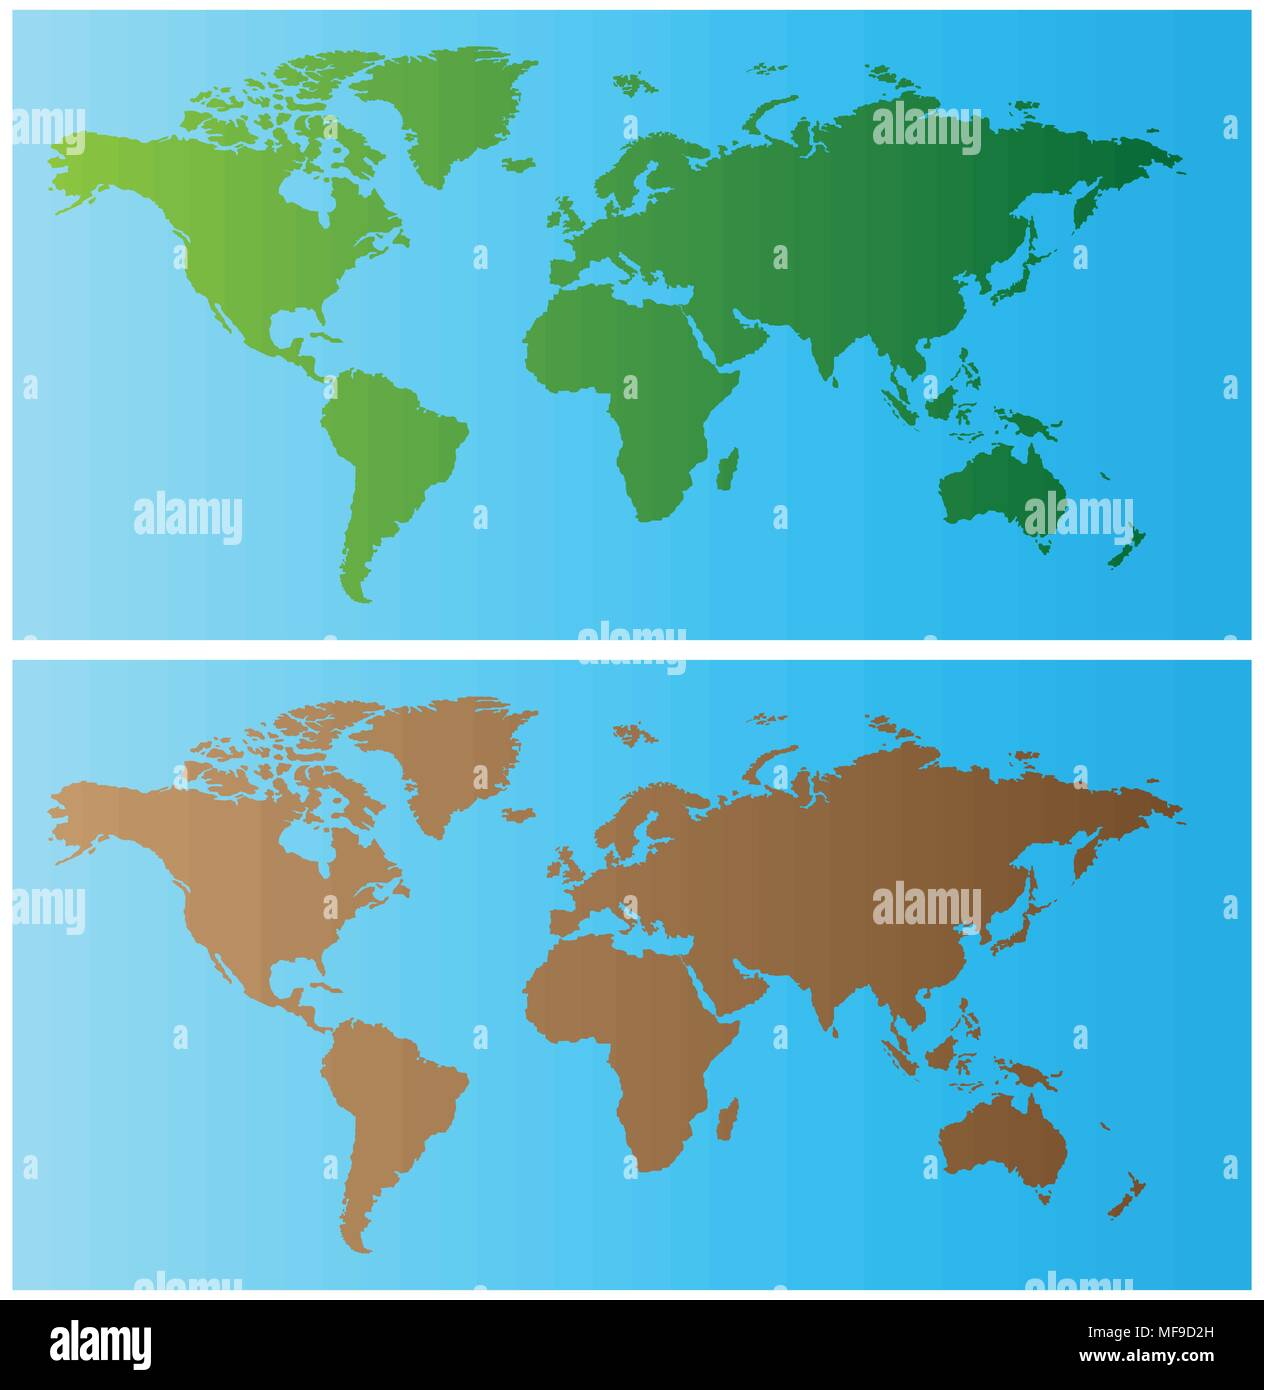 World Map Banner Stock Vector Art Illustration Vector Image